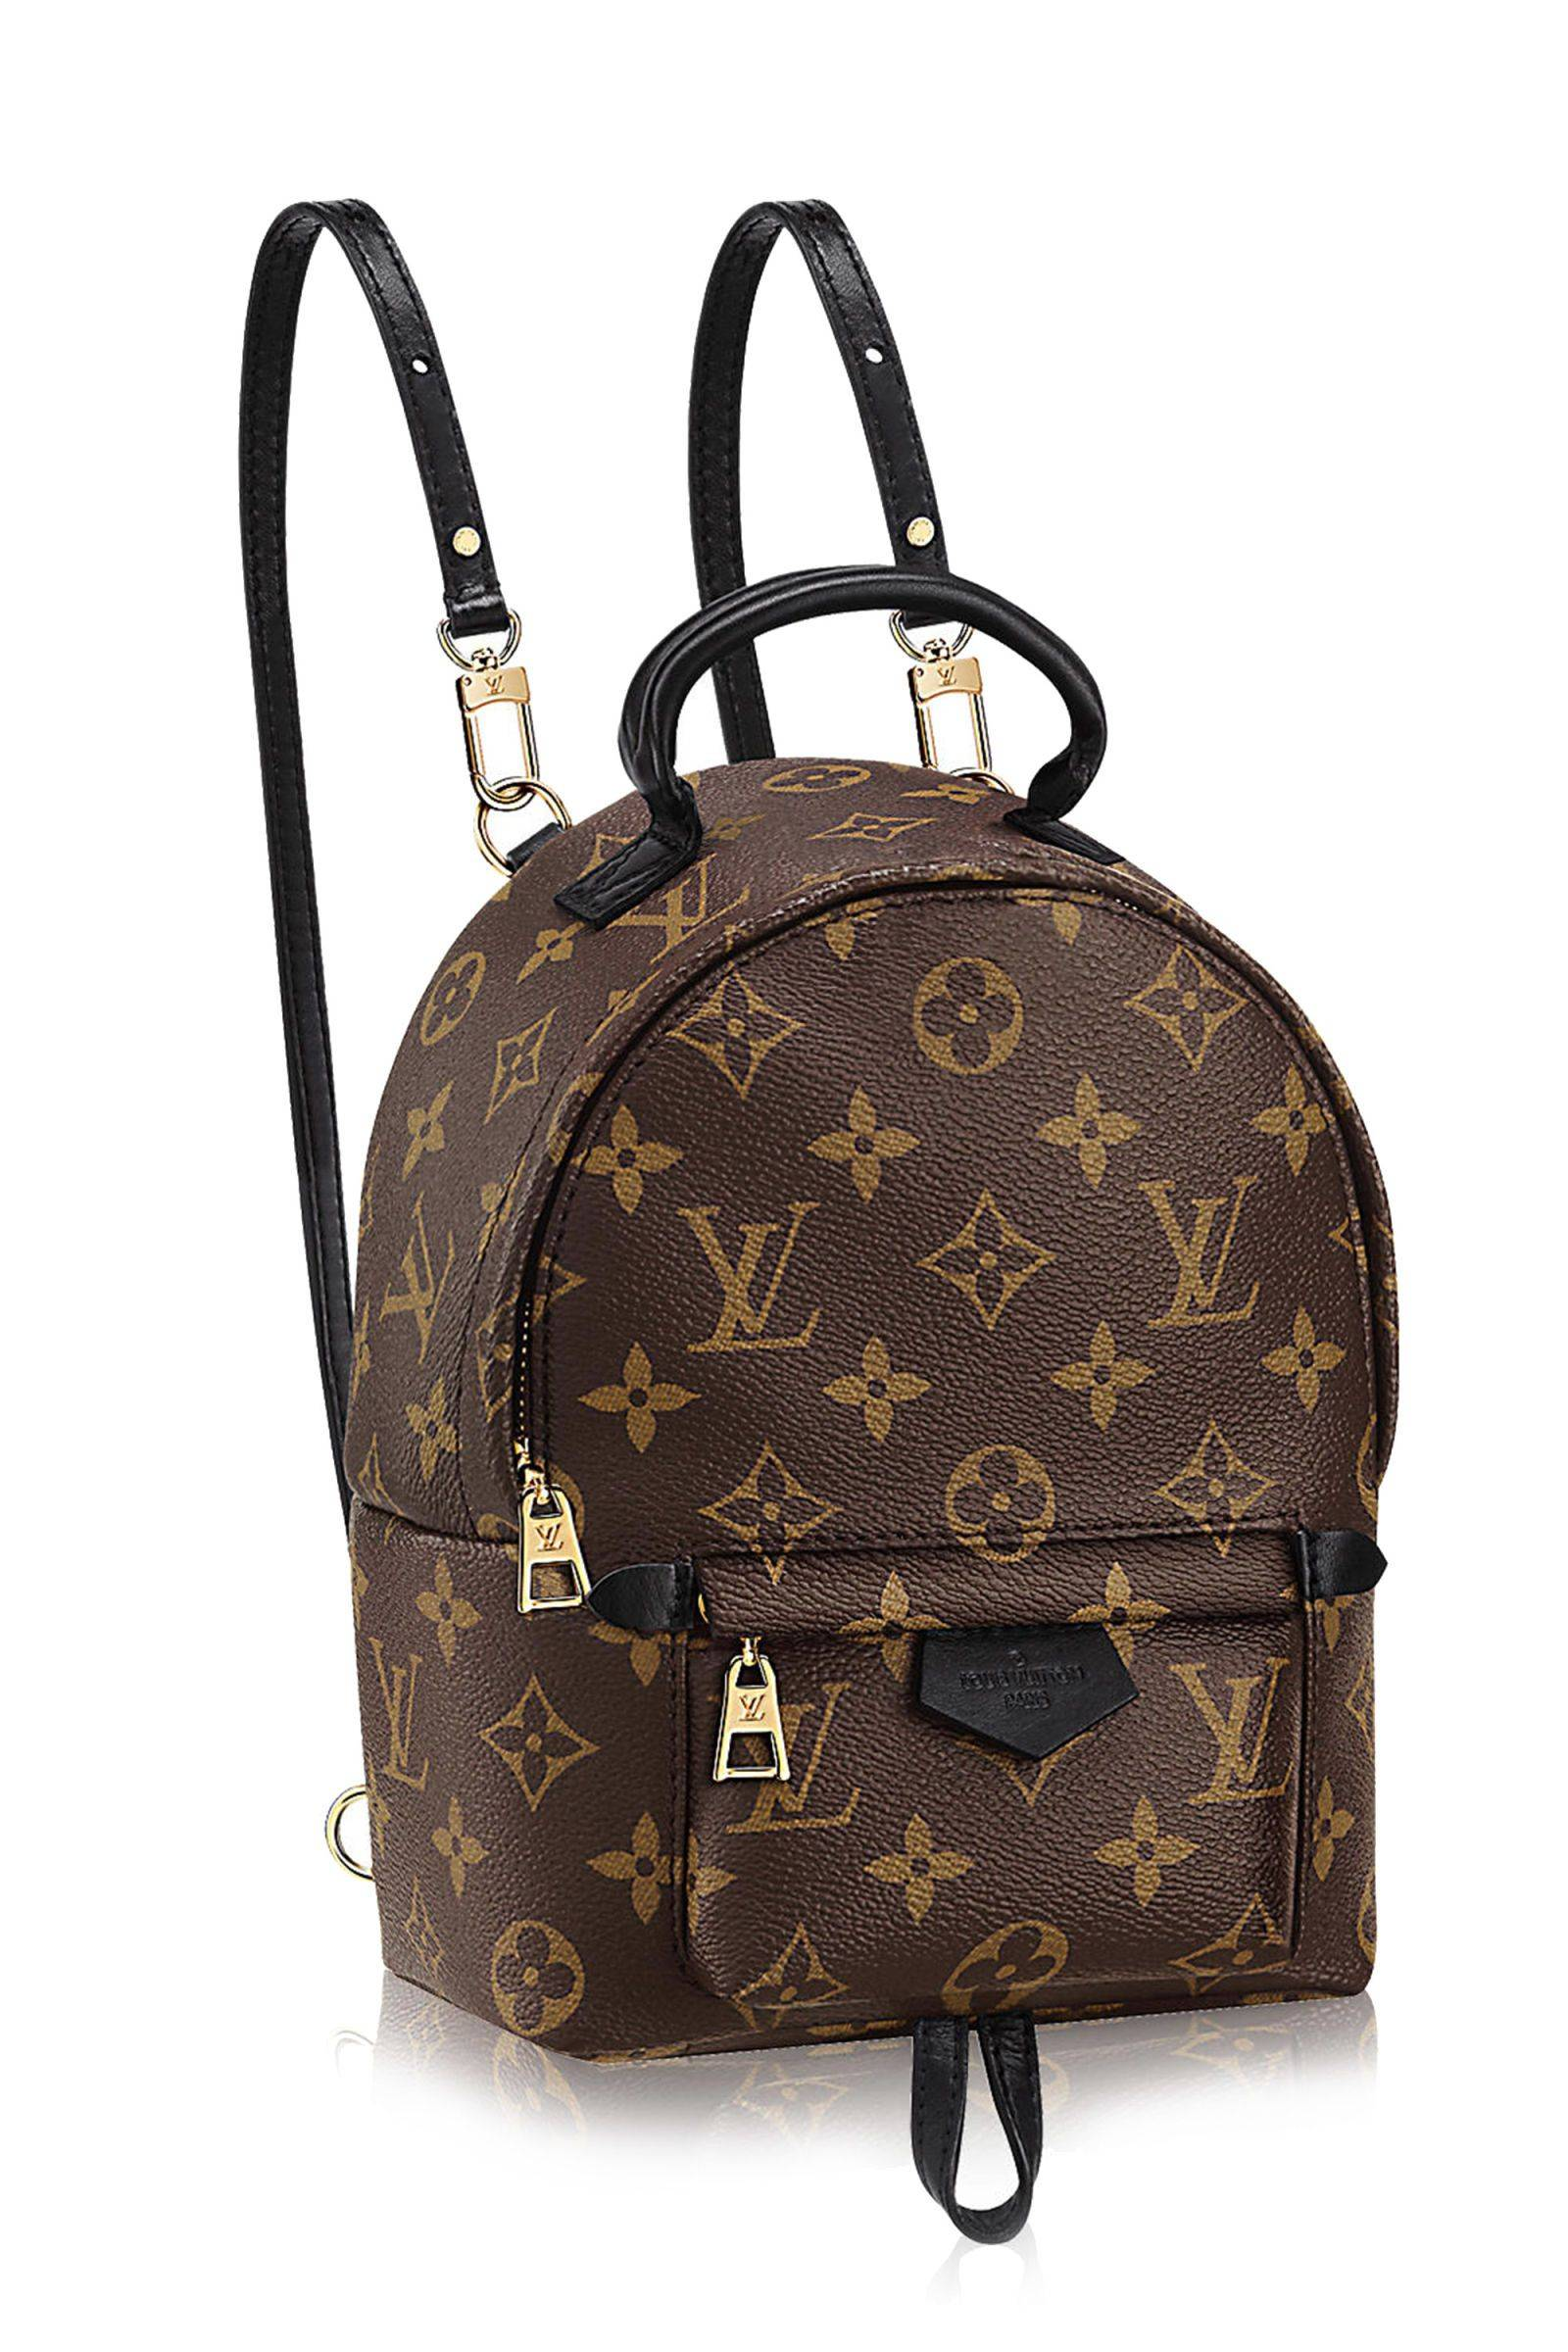 Louis Vuitton Trash Bags Unique 13 Designer Backpacks that are Worth the Splurge